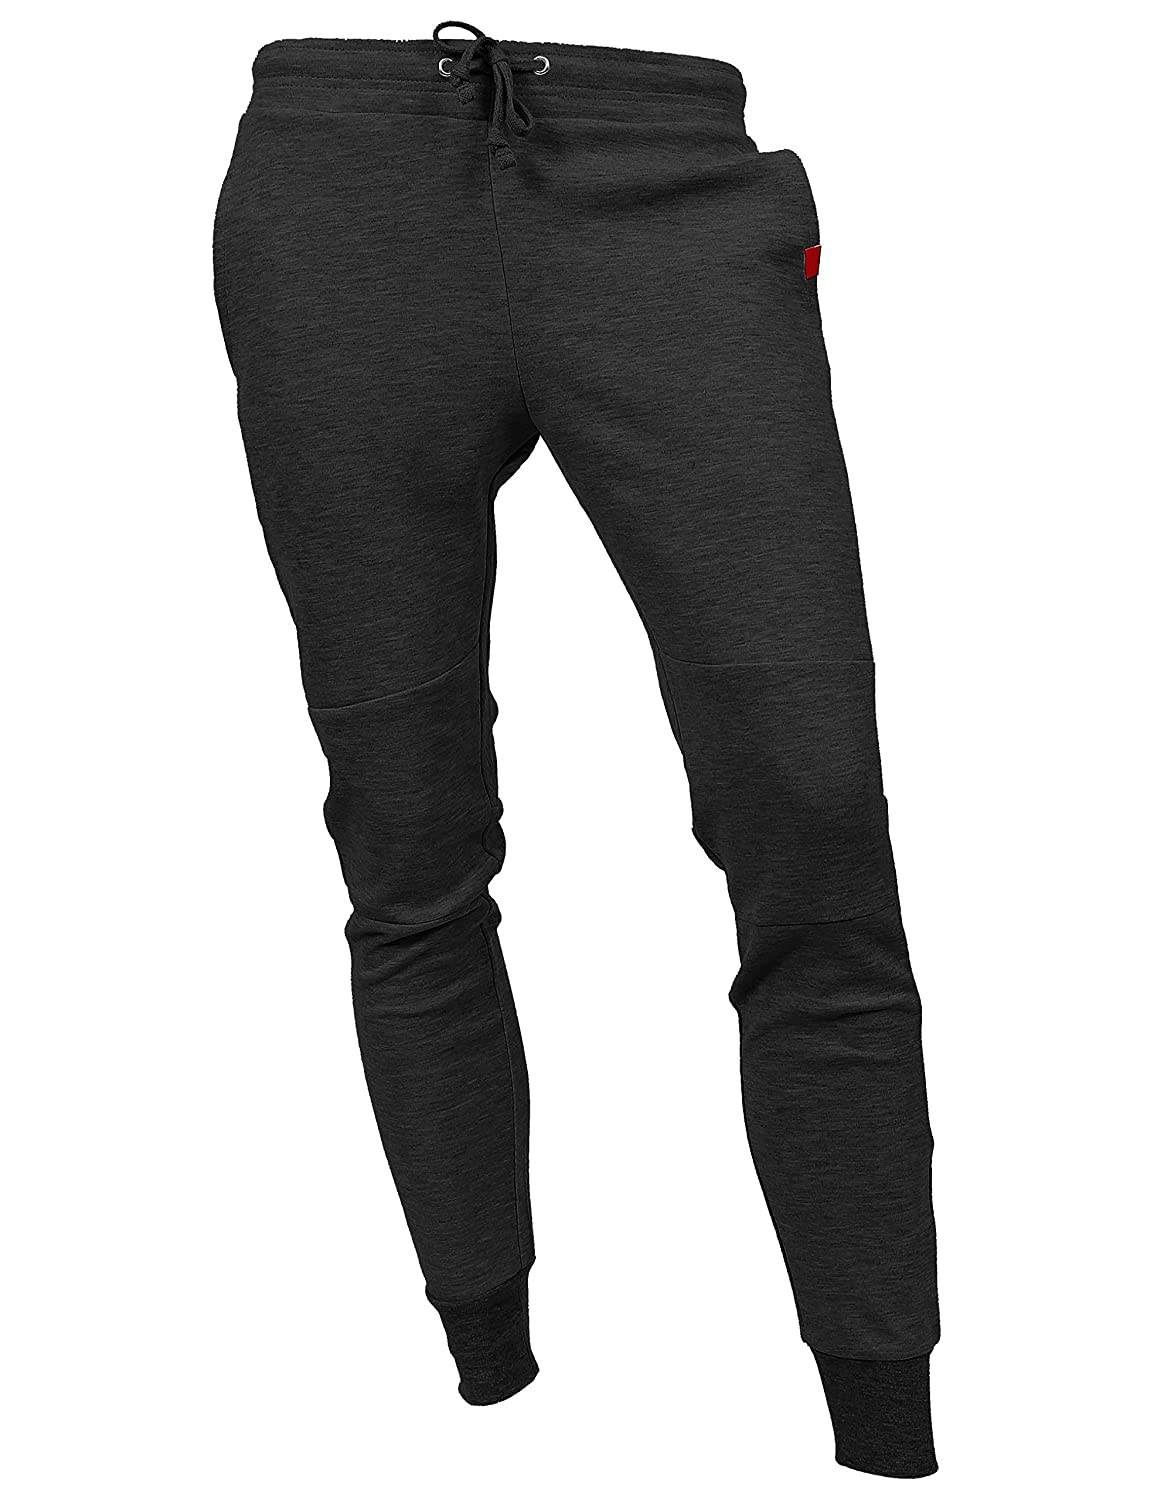 9f6538bdb17 Hat and Beyond Casual Fleece Jogger Pants Active Elastic Urban Slim Fit  DP-61 at Amazon Men s Clothing store